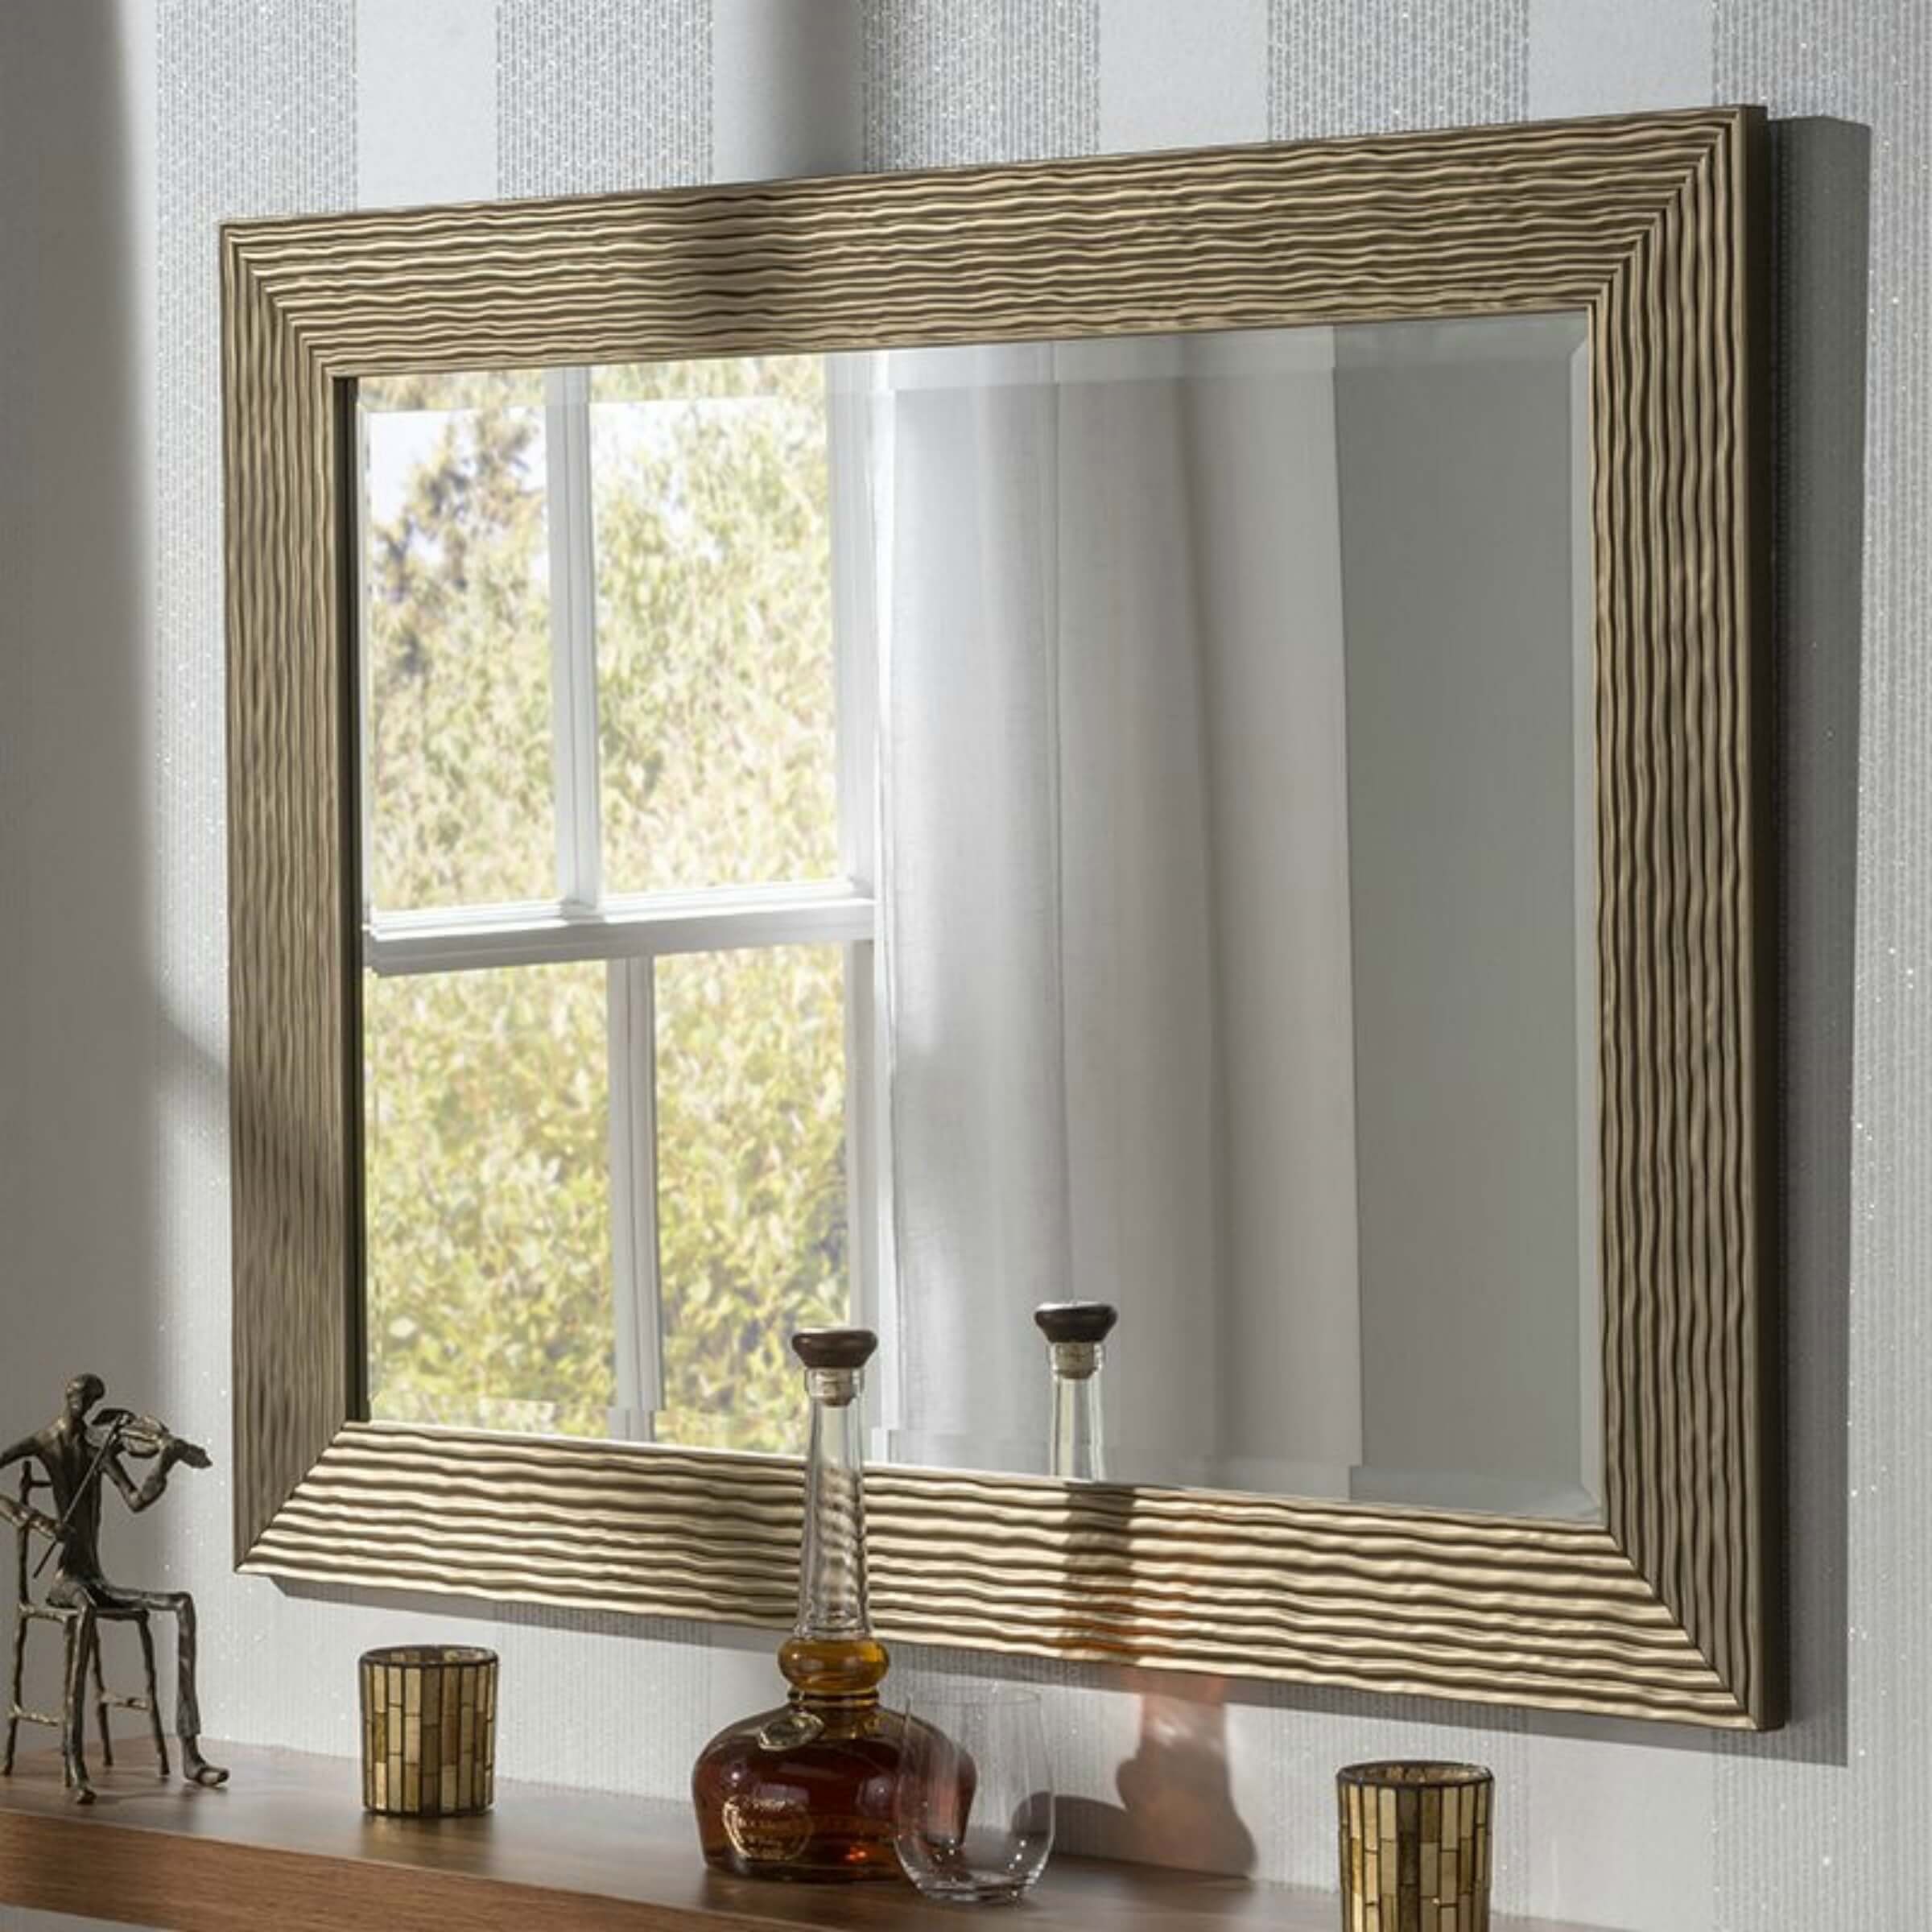 how to present your house for sale - large wicker framed mirror